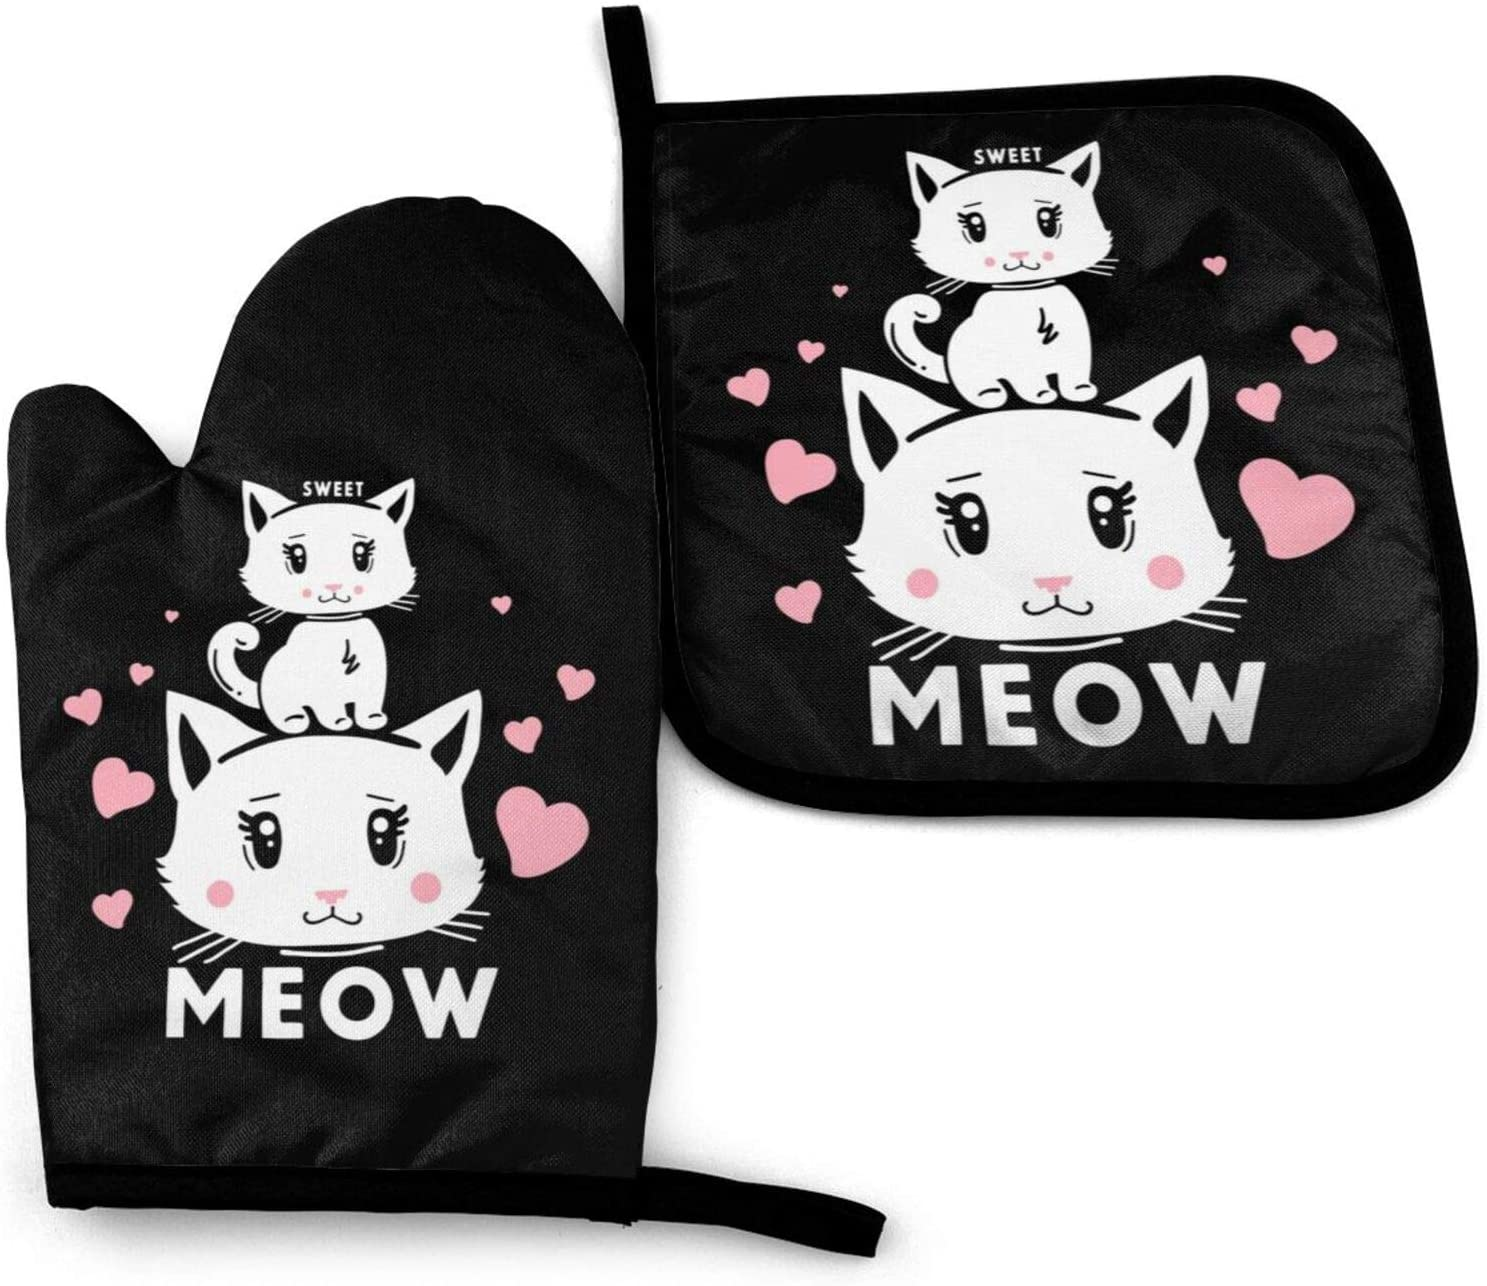 Sweet Cat Meow Oven Mitts and Pot Holders Sets Heat Resistant Oven Gloves with Non-Slip Surface for Reusable for Baking BBQ Cooking